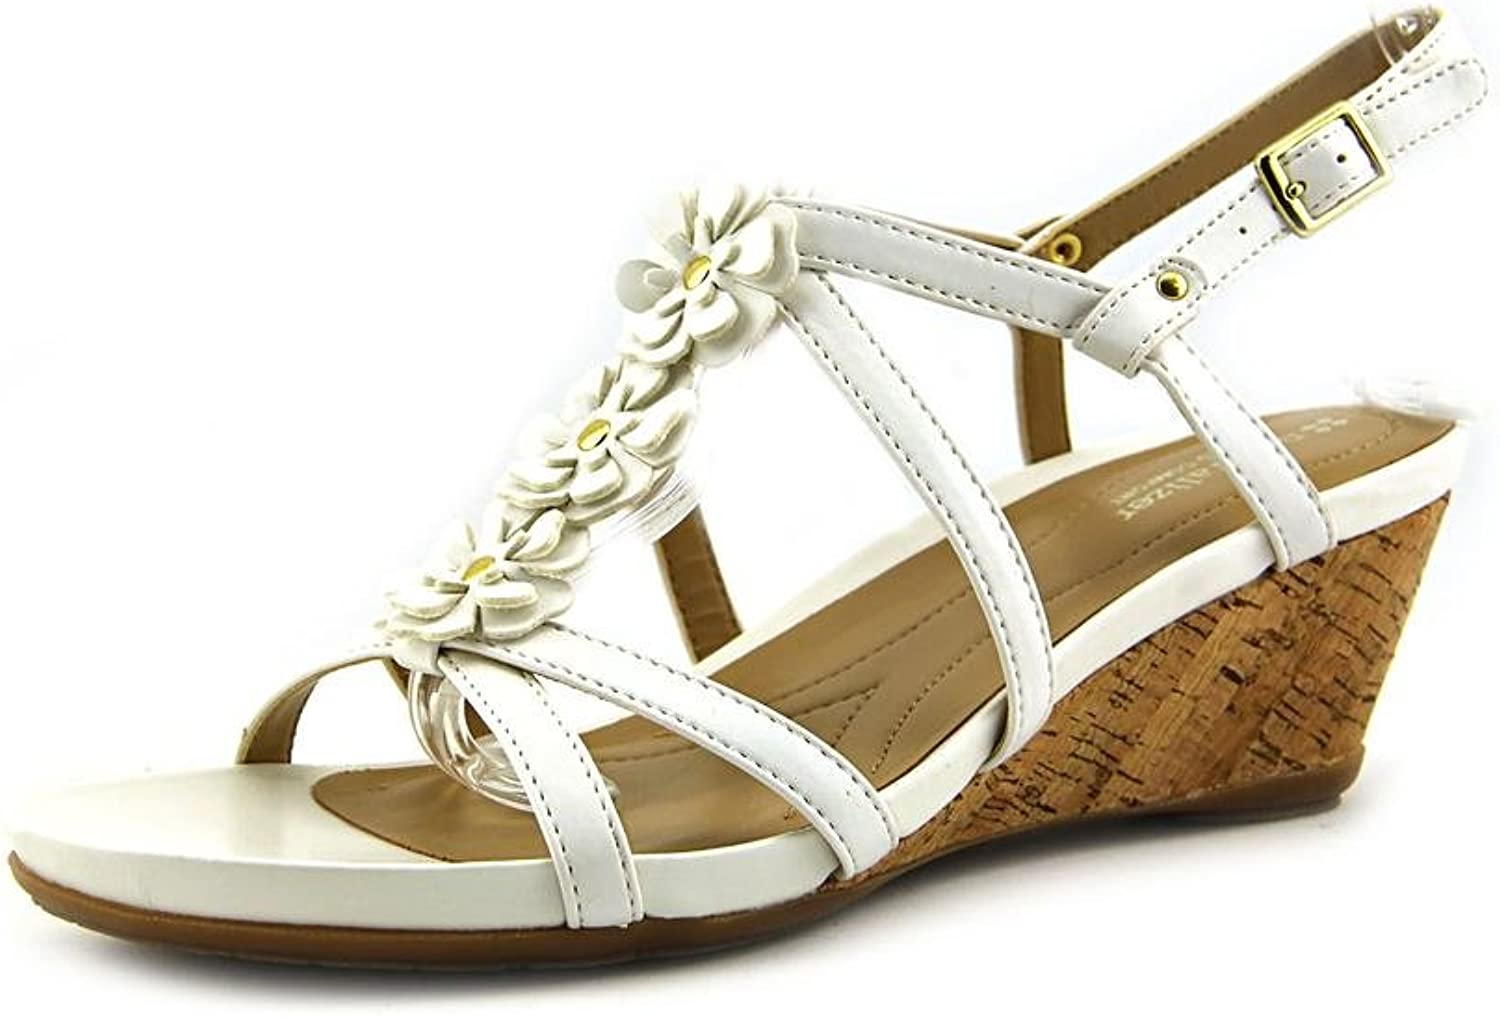 shoesbrandnames Naturalizer Sudi Womens Size 9 White Open Toe Faux Leather Wedge Sandals shoes